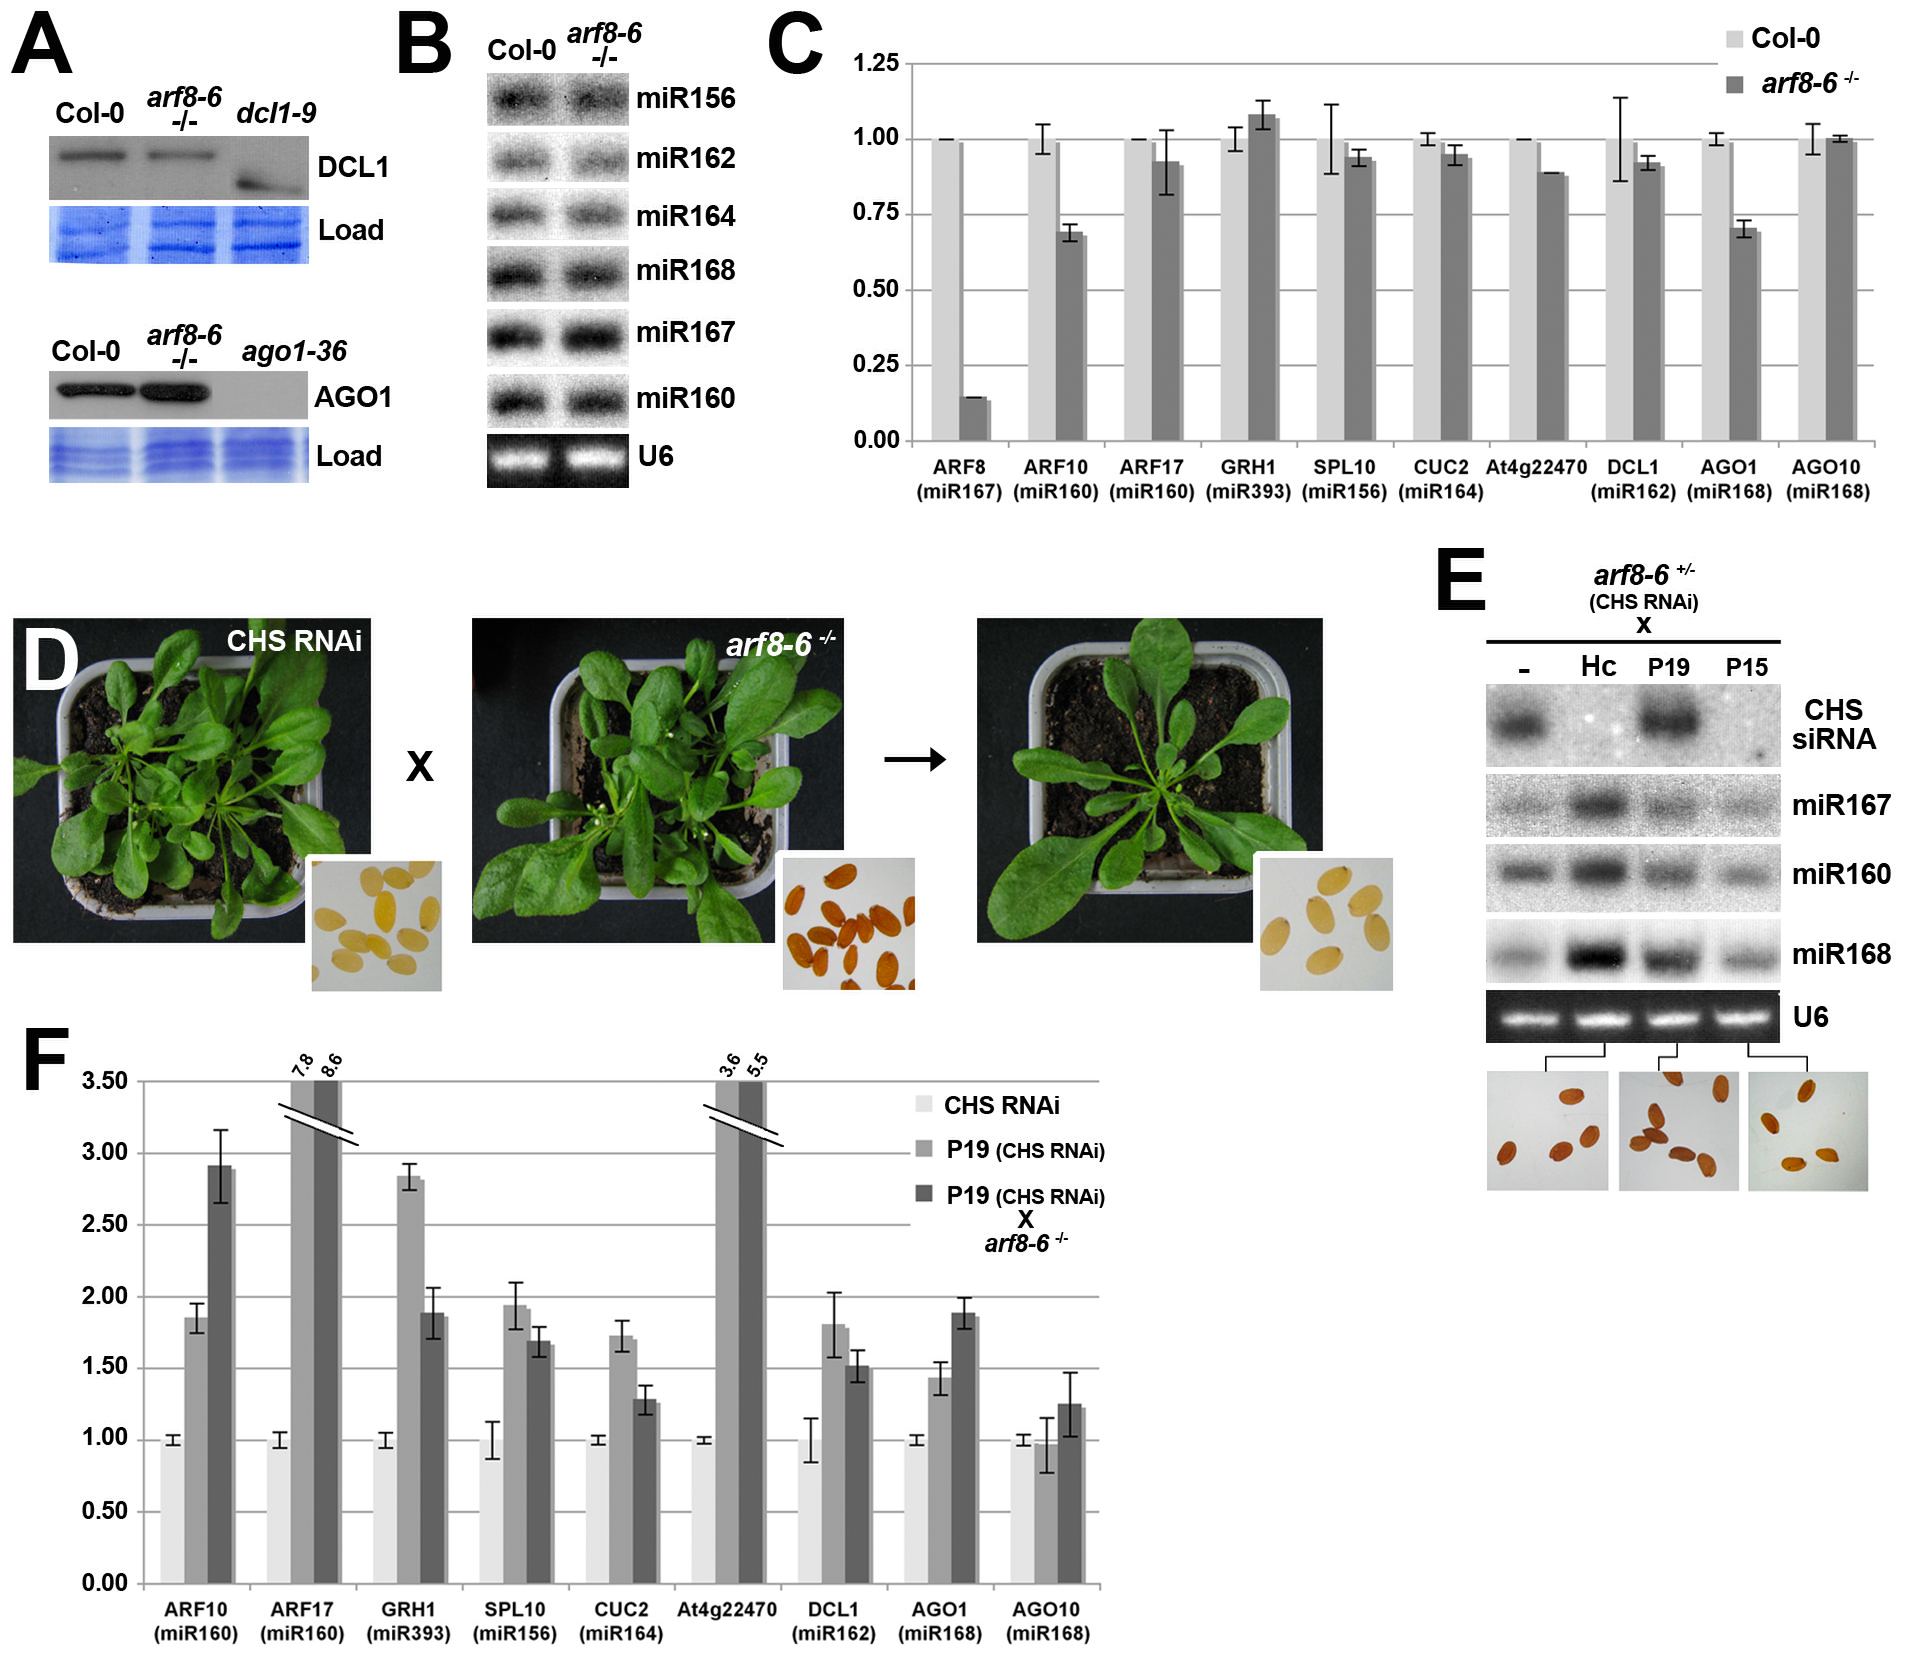 RNAi and miRNA-mediated gene silencing are not compromised by the <i>arf8</i> mutation.